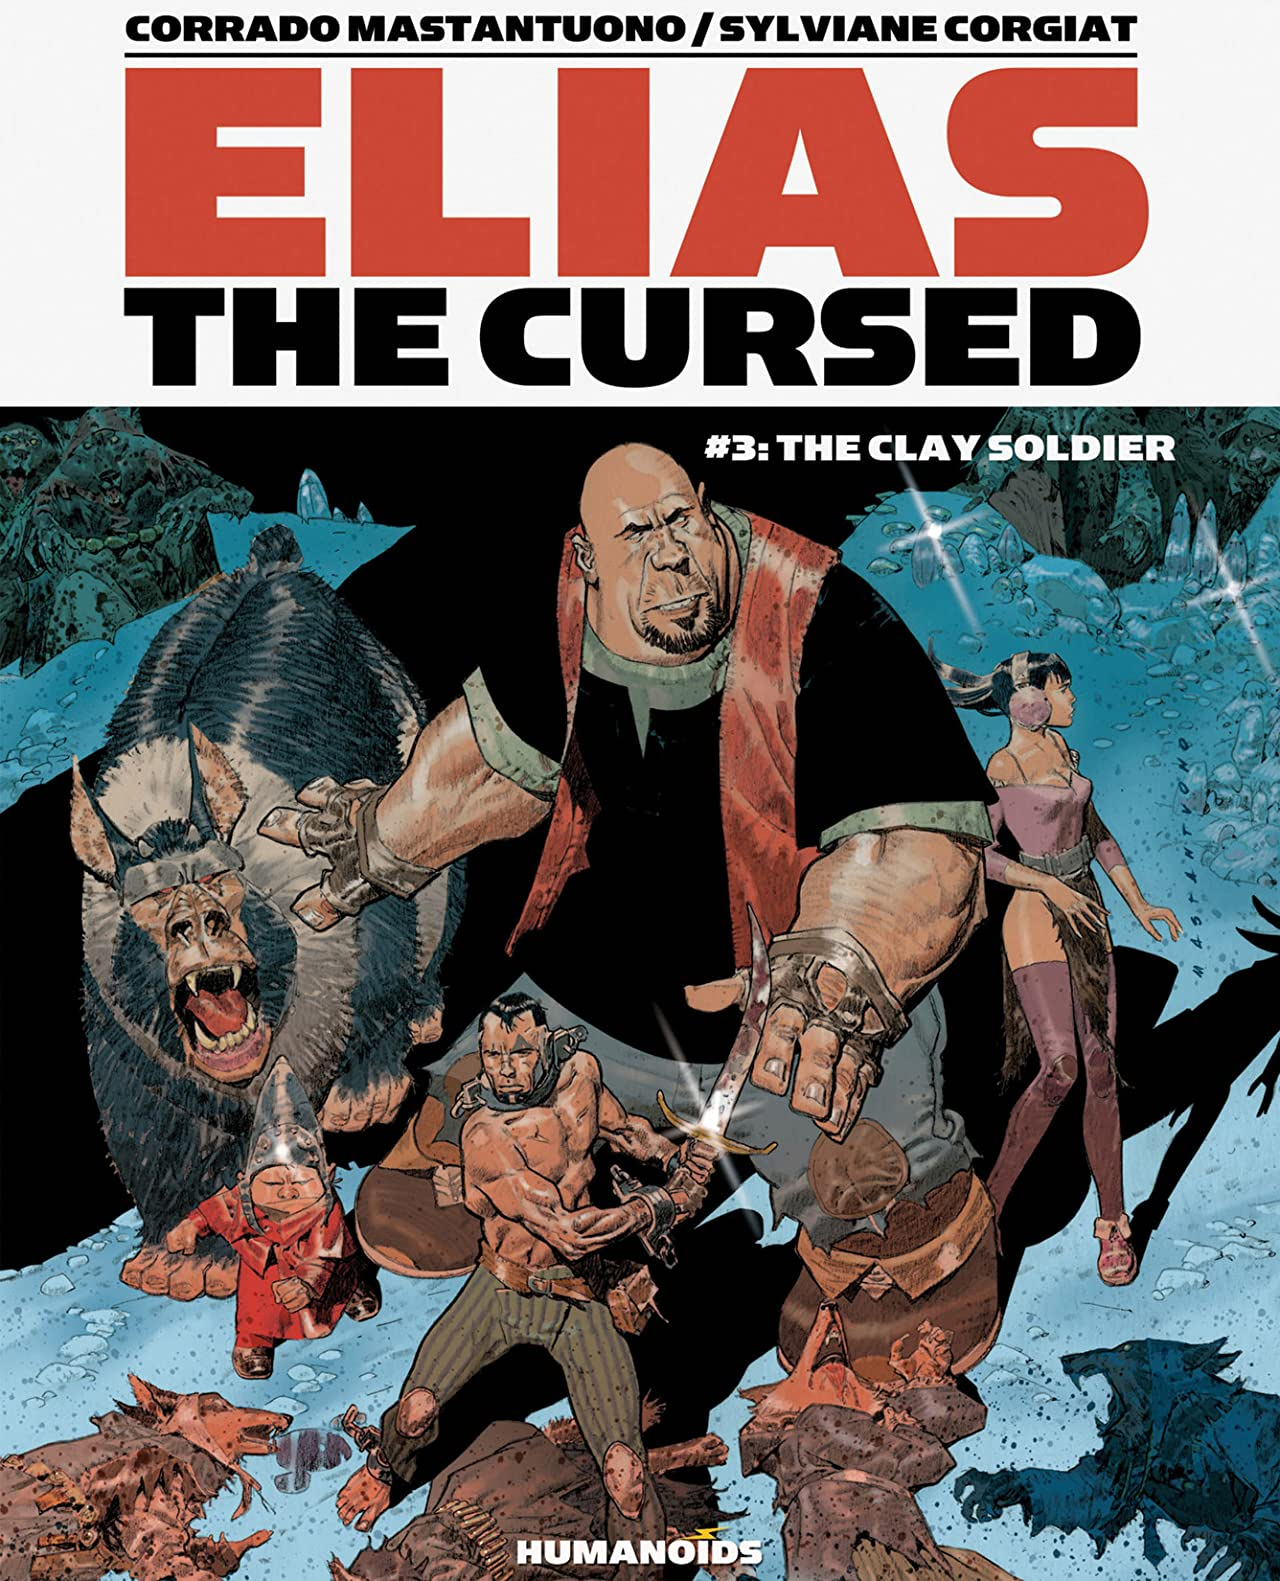 Elias the Cursed #3: The Clay Soldier